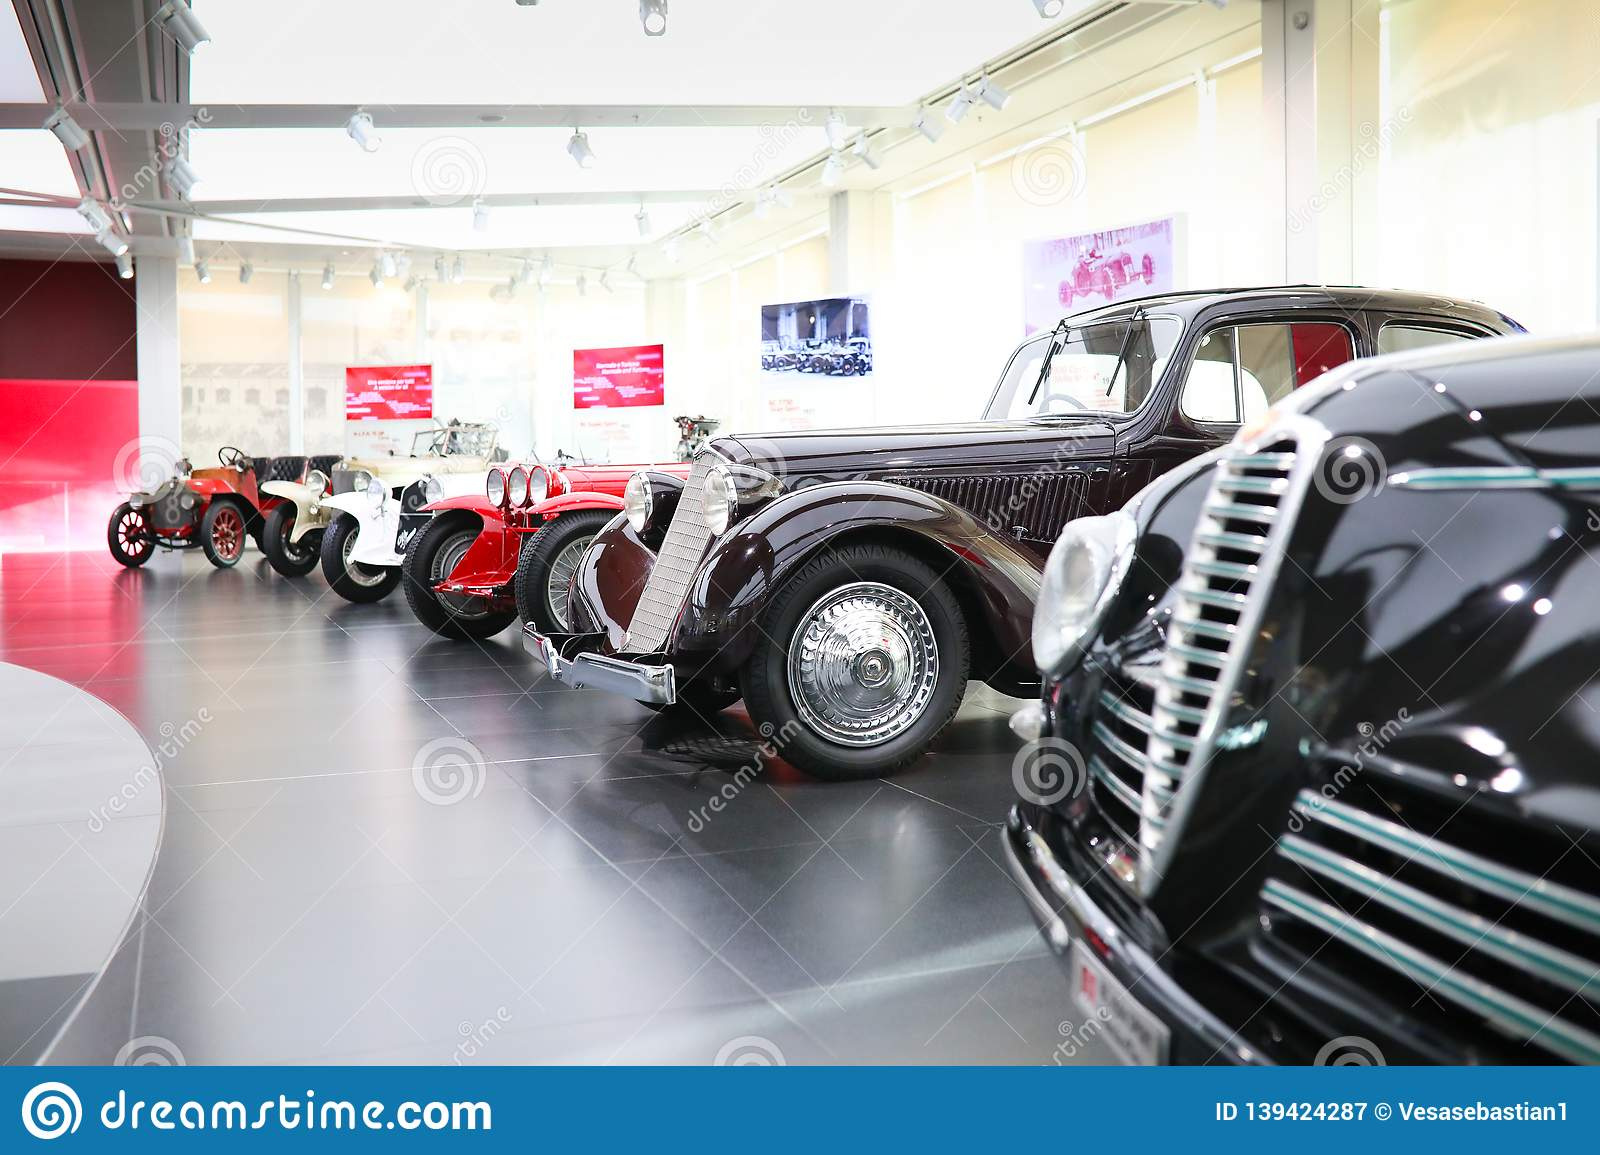 Several Alfa Romeo vintage cars on display at The Historical Museum Alfa Romeo